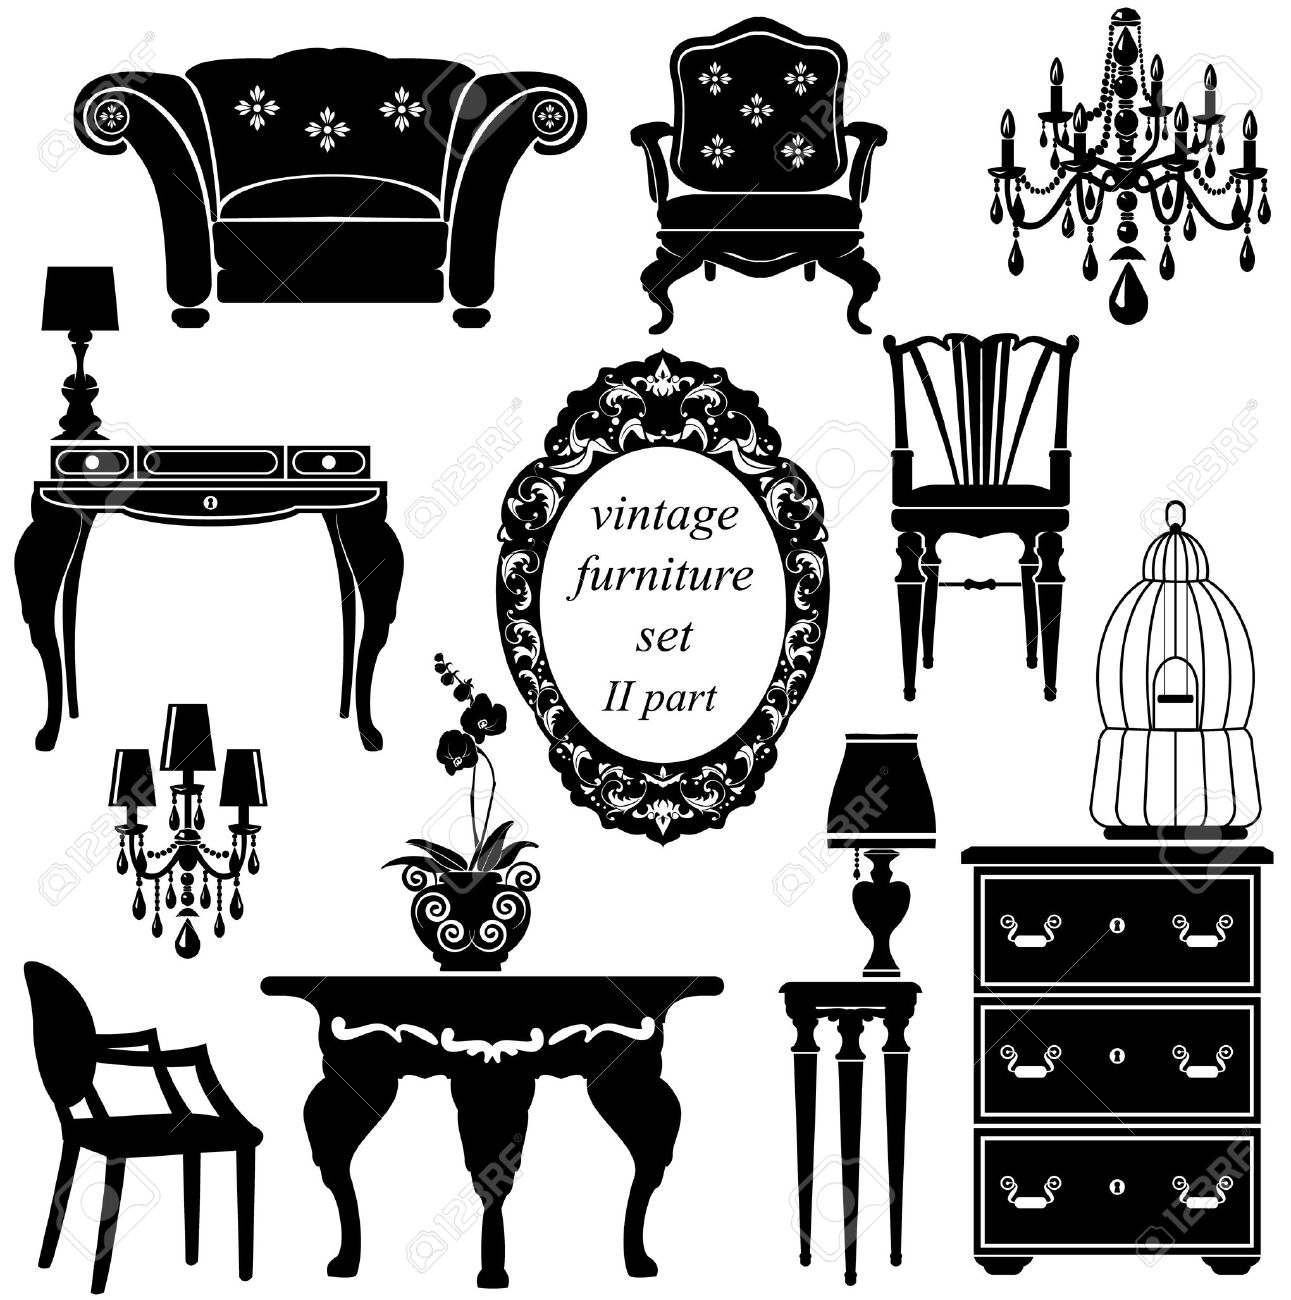 Antique chair silhouette - Set Of Antique Furniture Isolated Black Silhouettes Stock Vector 27580289